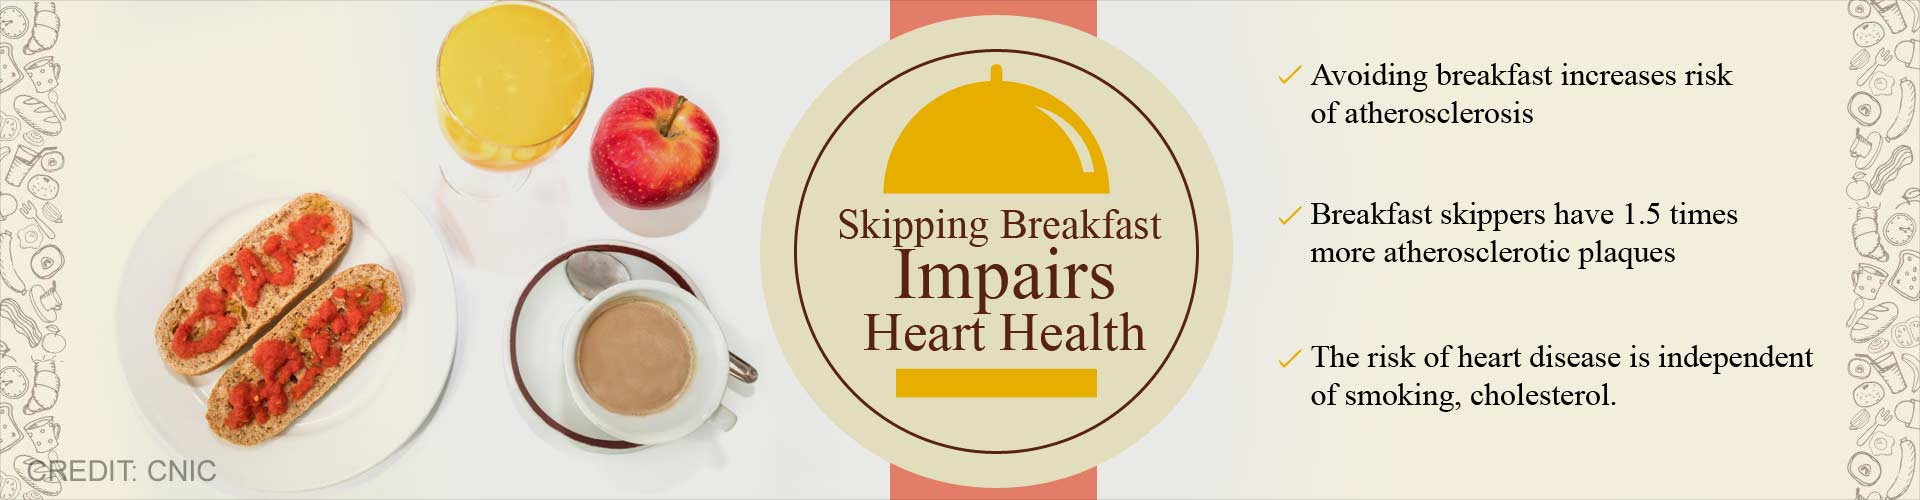 Skipping breakfast impairs heart health - Avoiding breakfast increases risk of atherosclerosis - Breakfast skippers have 1.5 times more atherosclerotic plaques - The risk of heart disease is independent of smoking, cholesterol